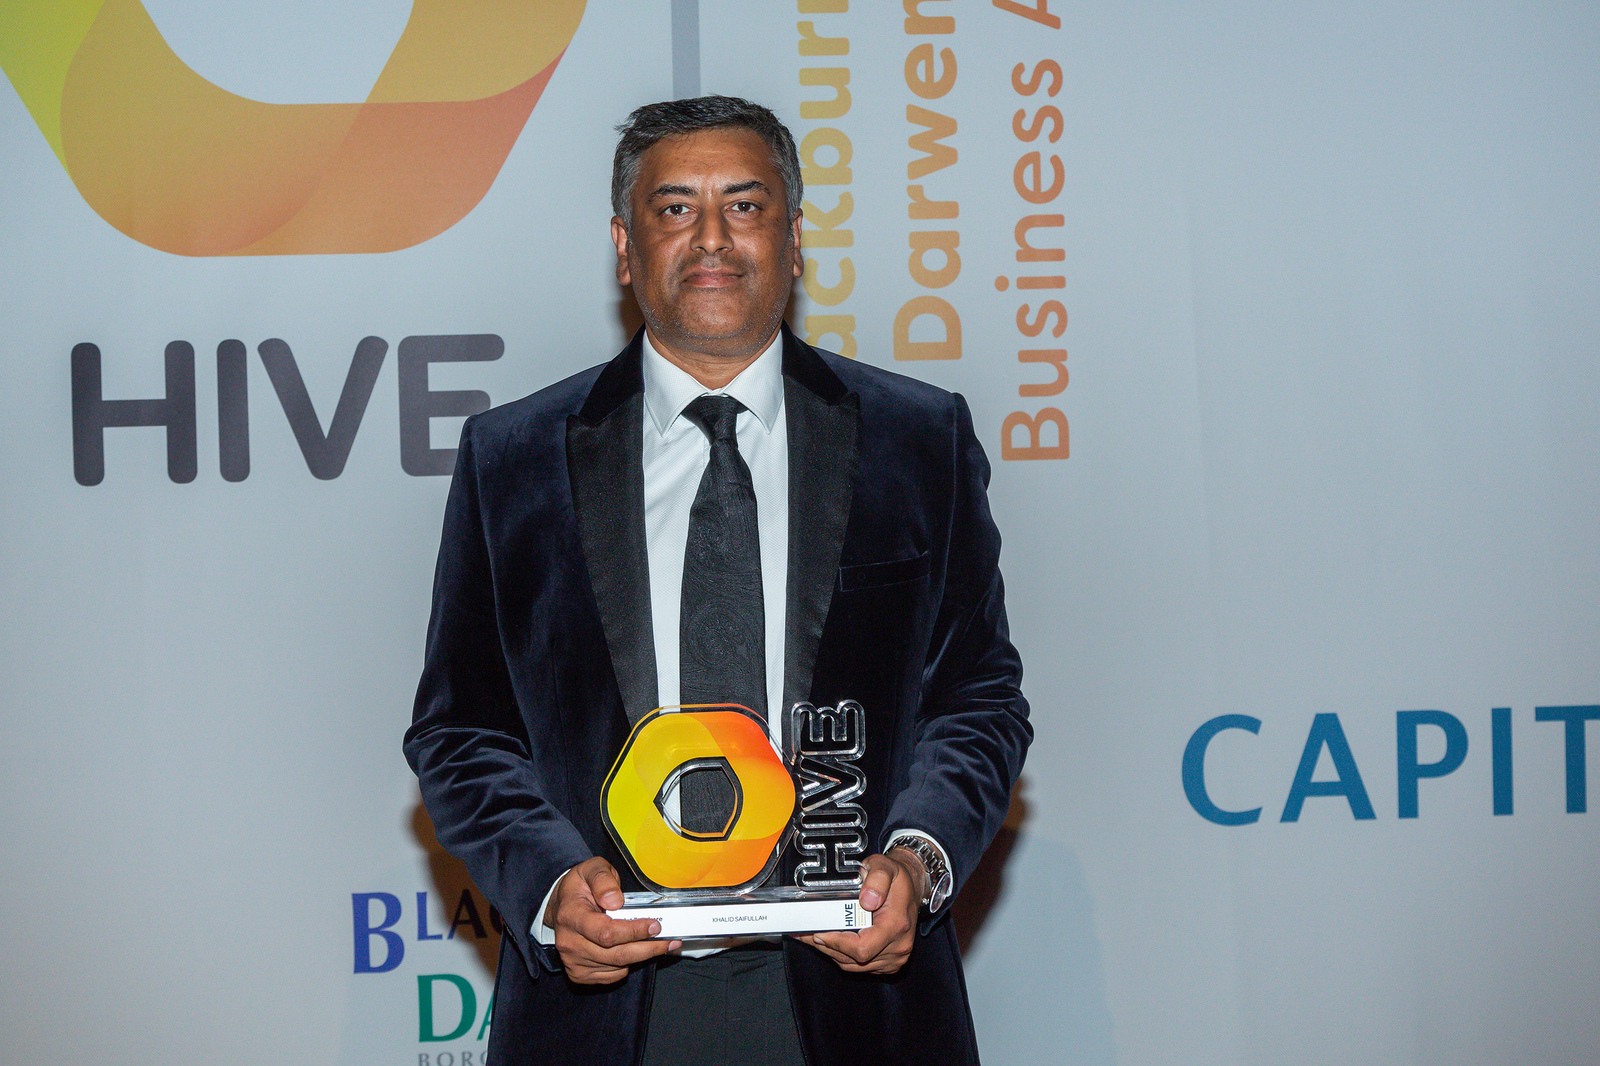 Help support the Hive Business Awards - a unique opportunity